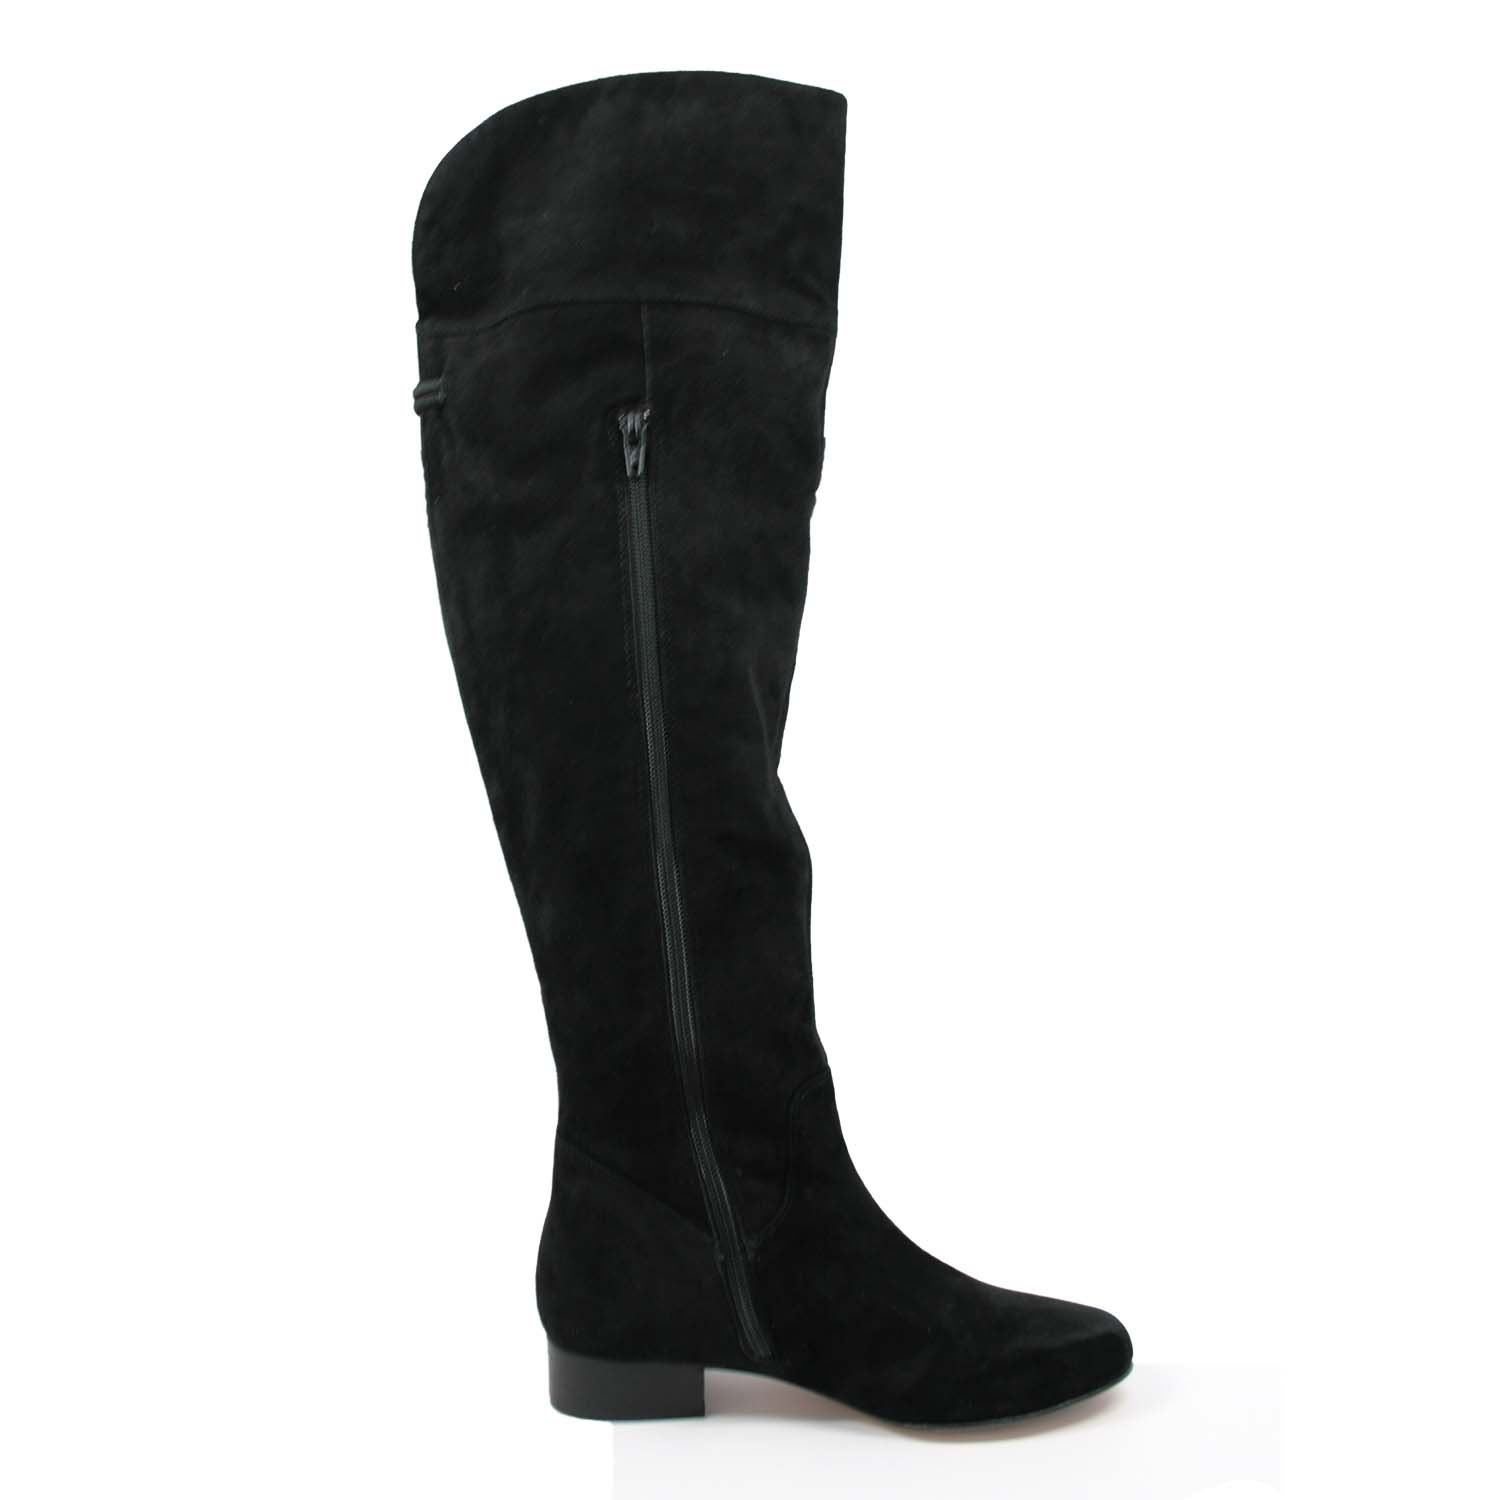 ros hommerson simply wide shaft the knee boot black